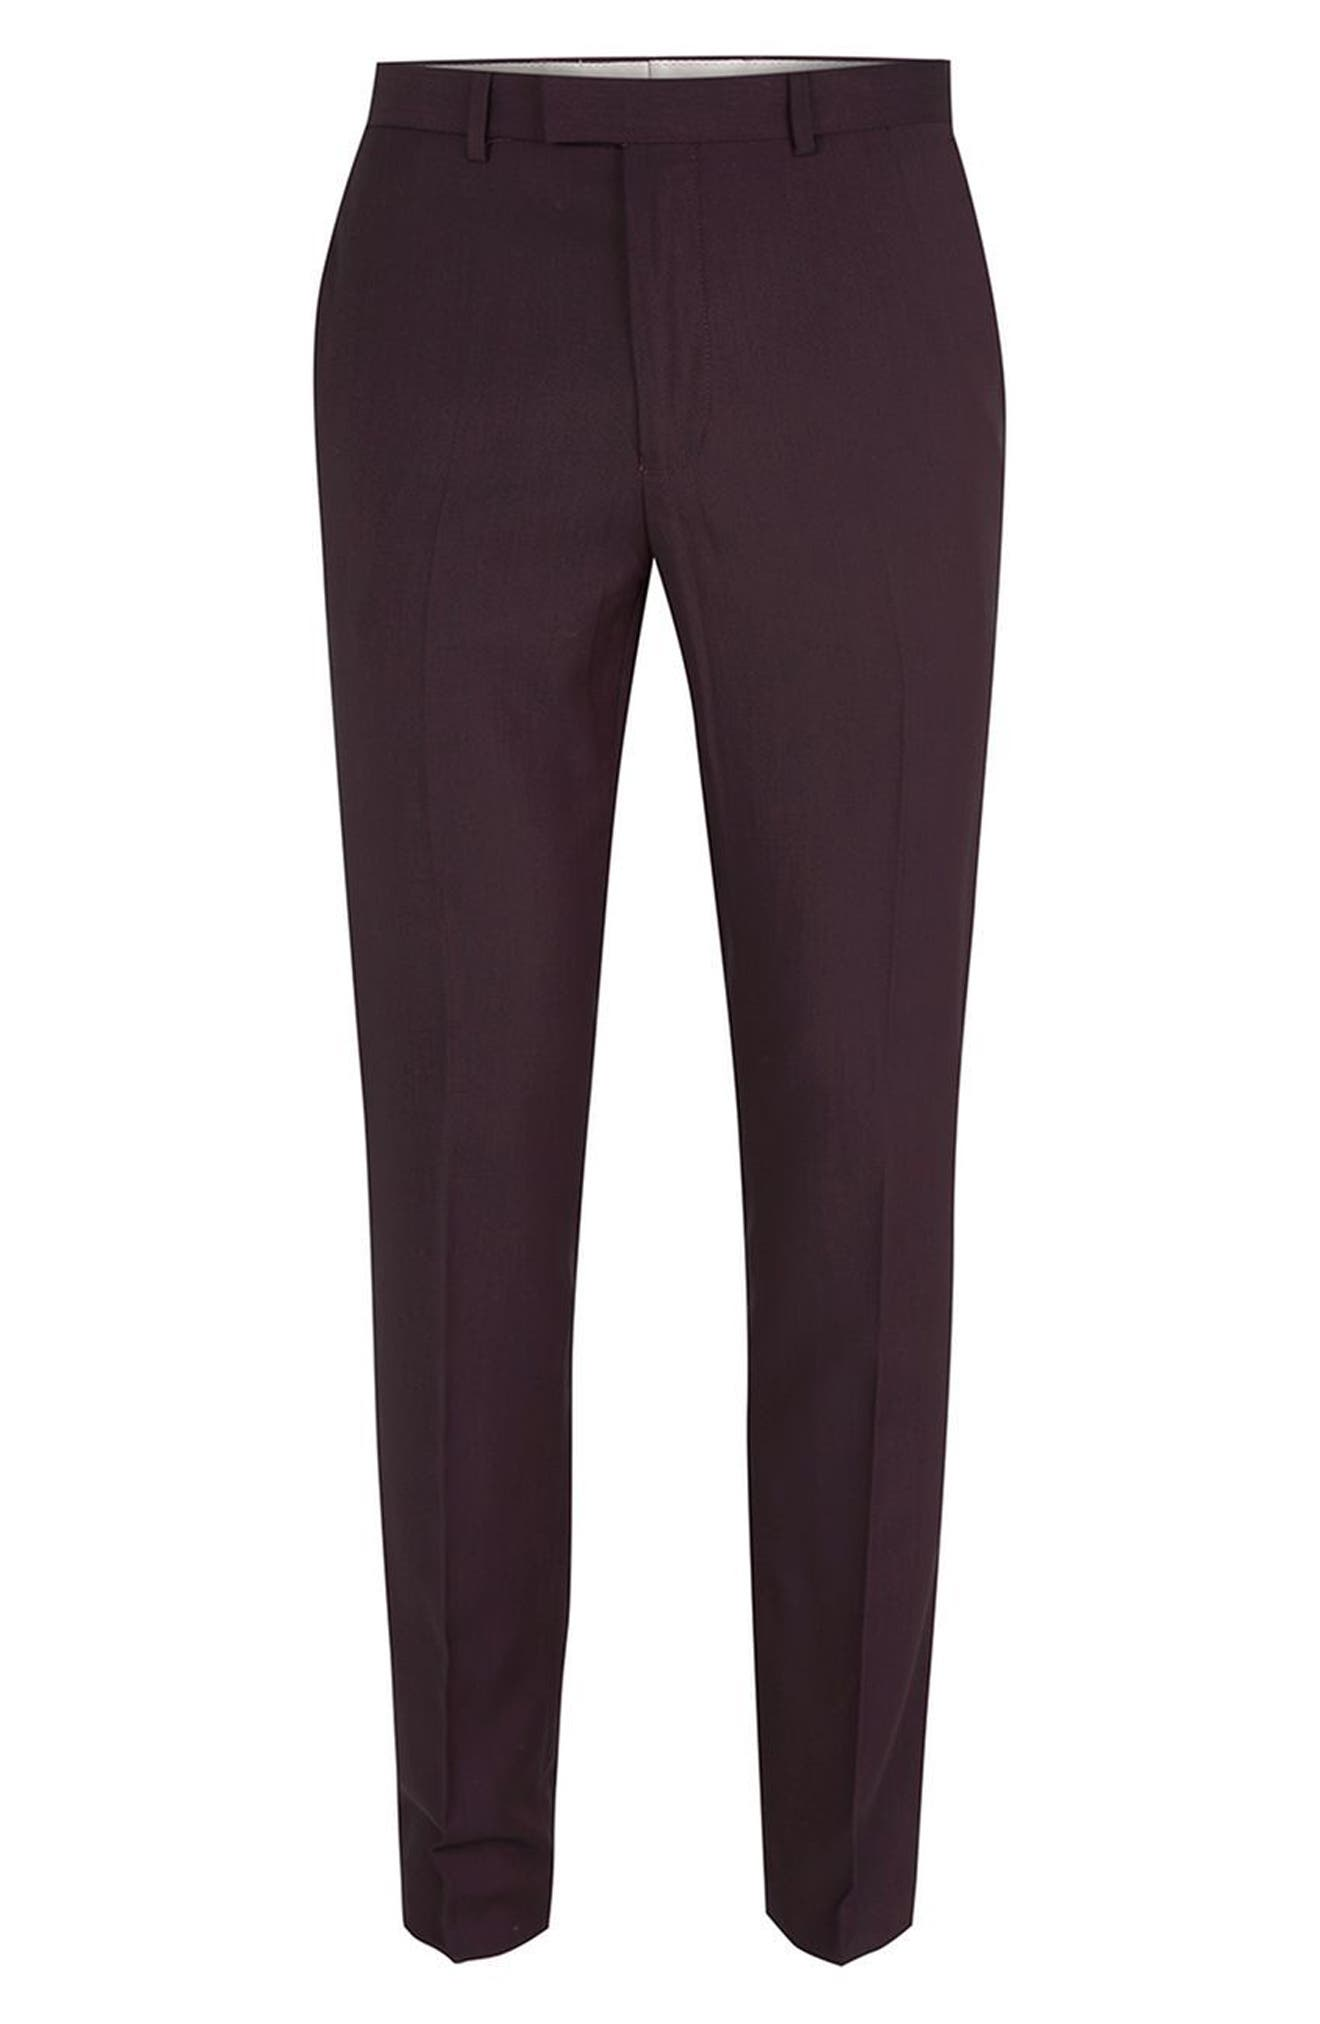 TOPMAN,                             Skinny Fit Plum Suit Trousers,                             Alternate thumbnail 4, color,                             500